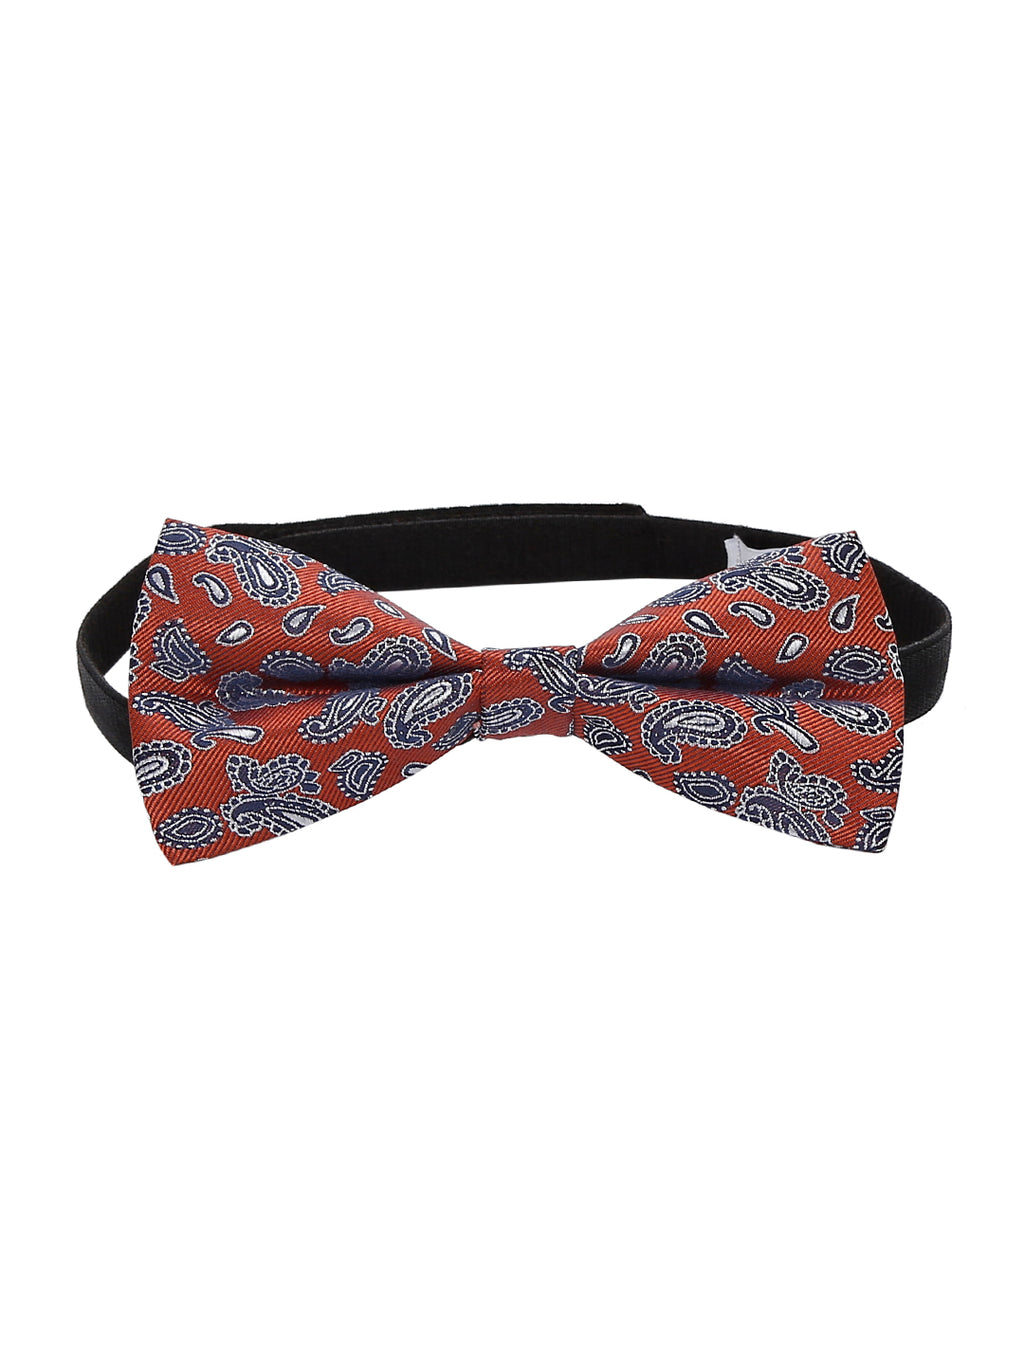 Zido Bow Tie for Men BJQ705